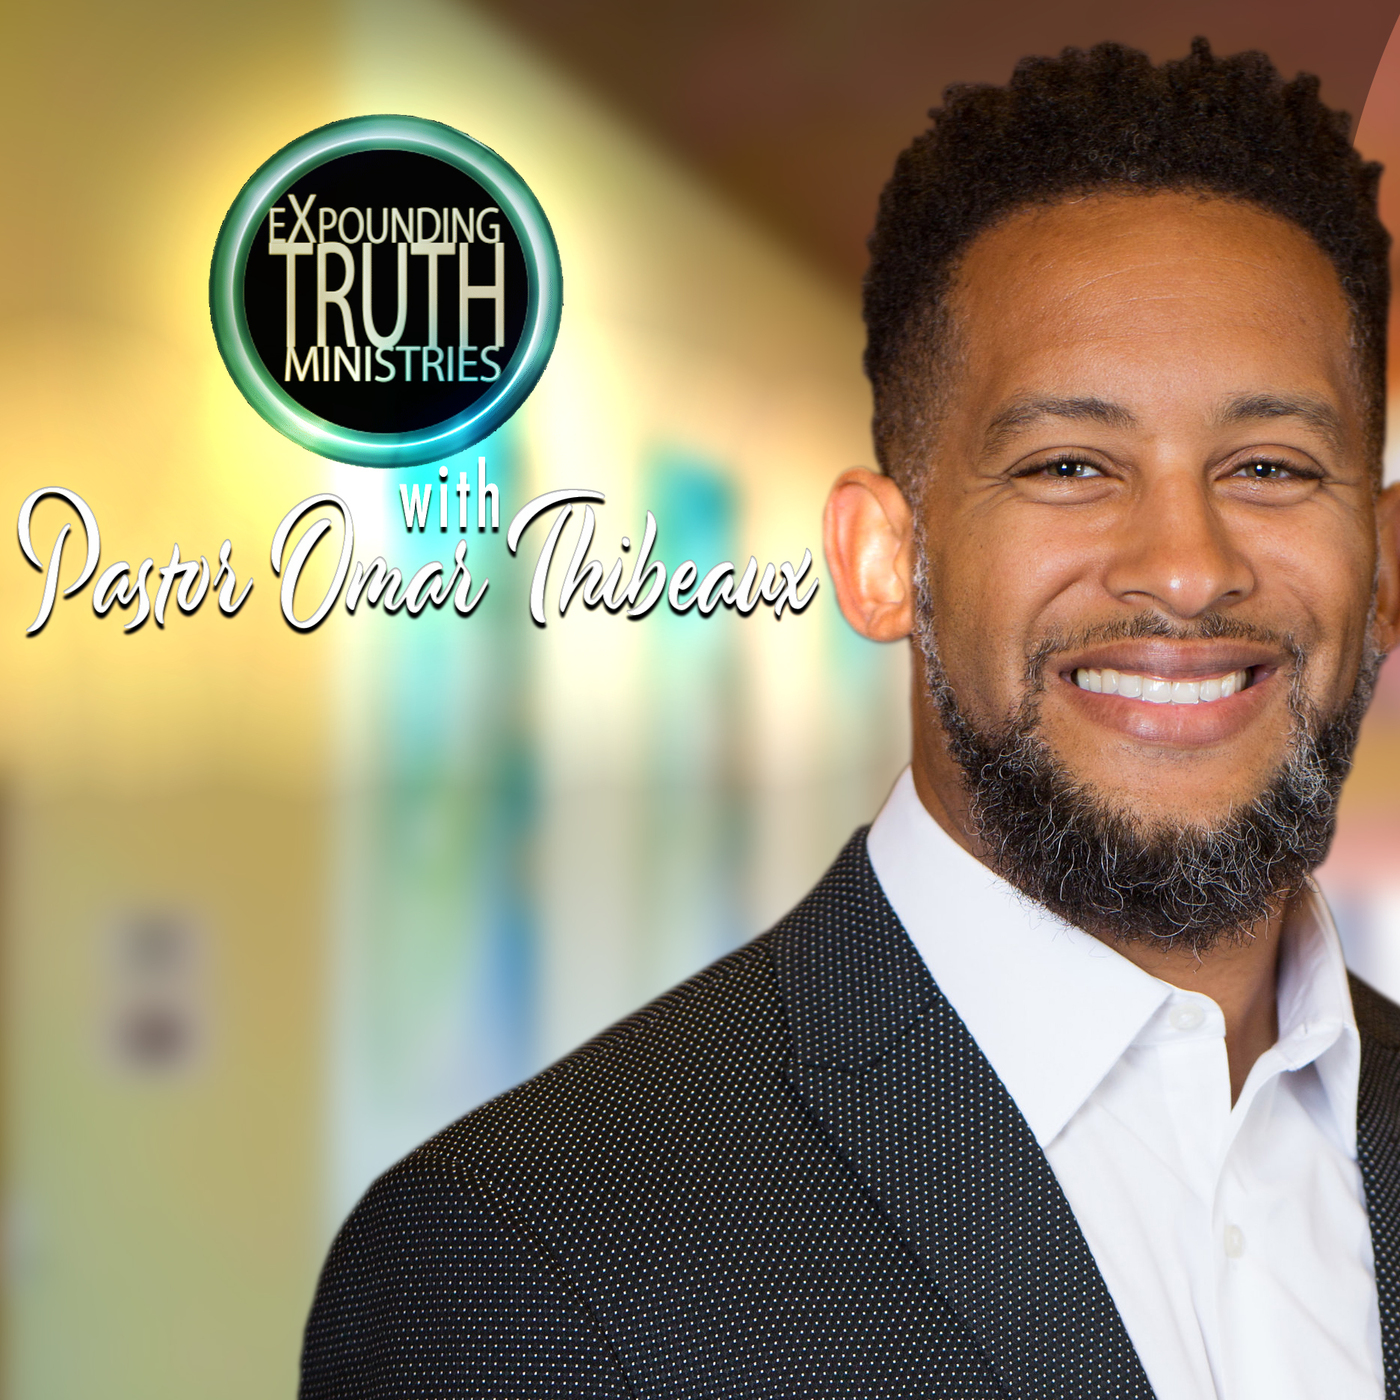 Expounding Truth Ministries with Pastor Omar Thibeaux Podcast